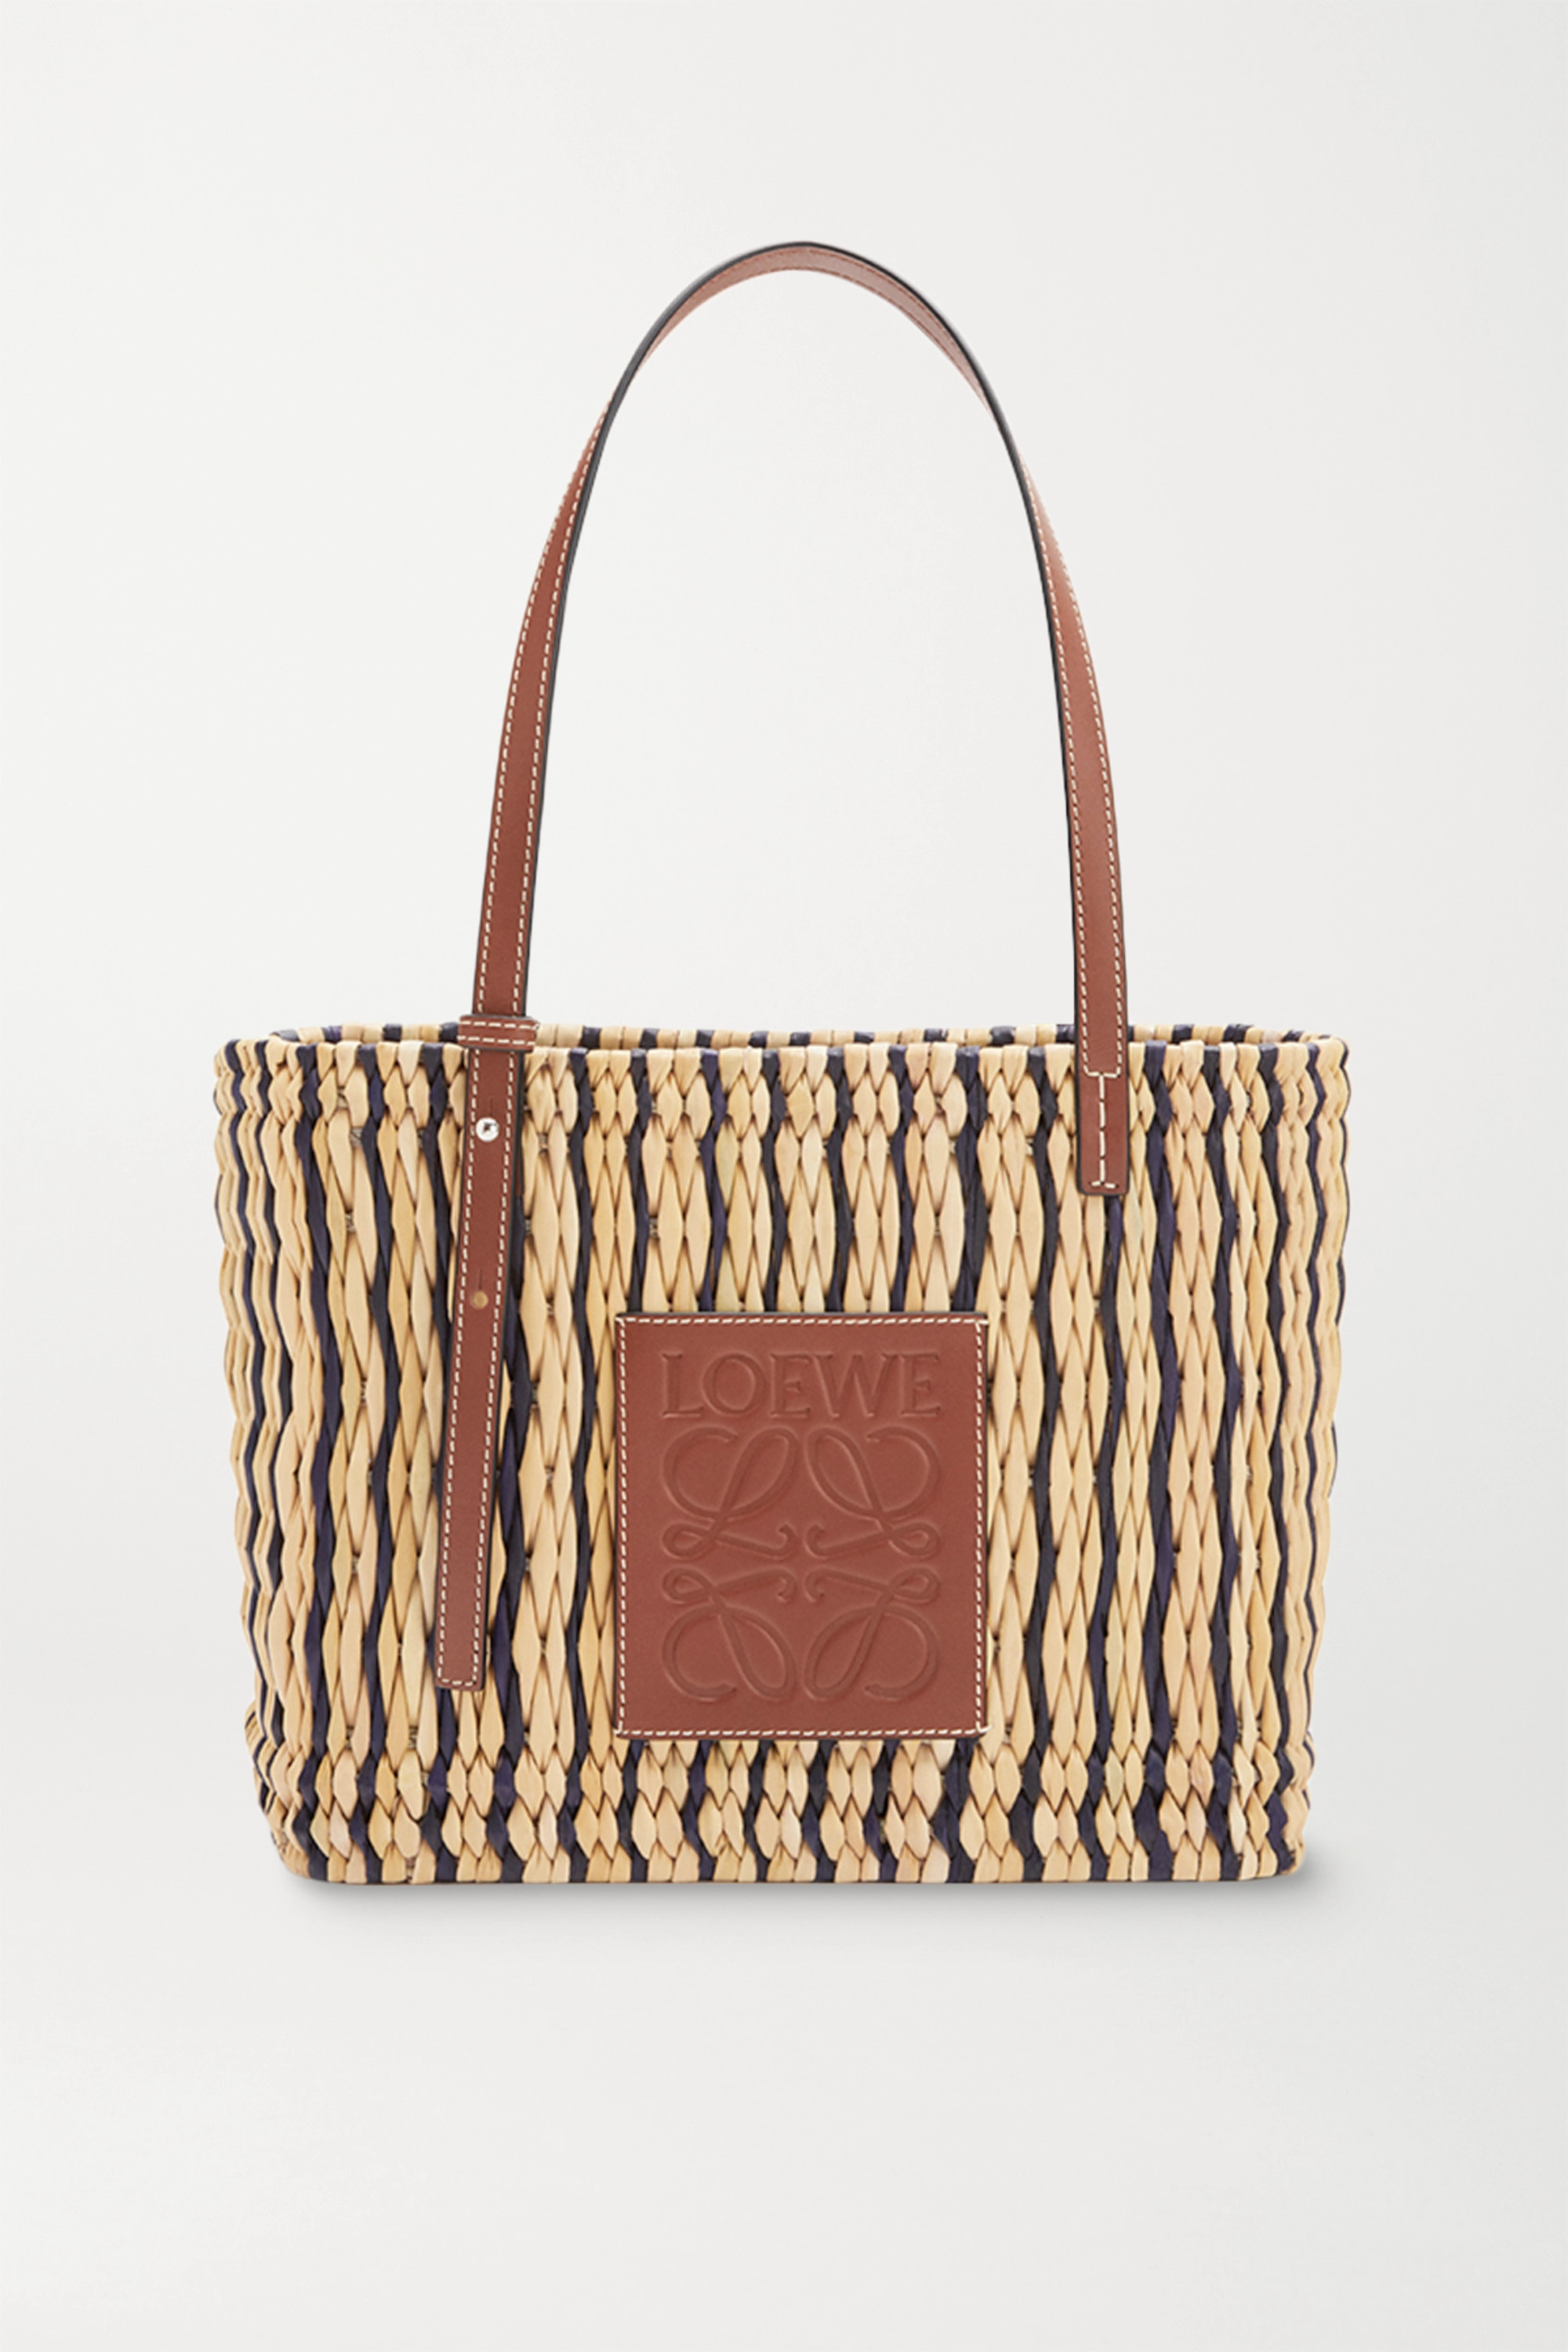 Loewe + Paula's Ibiza small leather-trimmed striped woven raffia tote